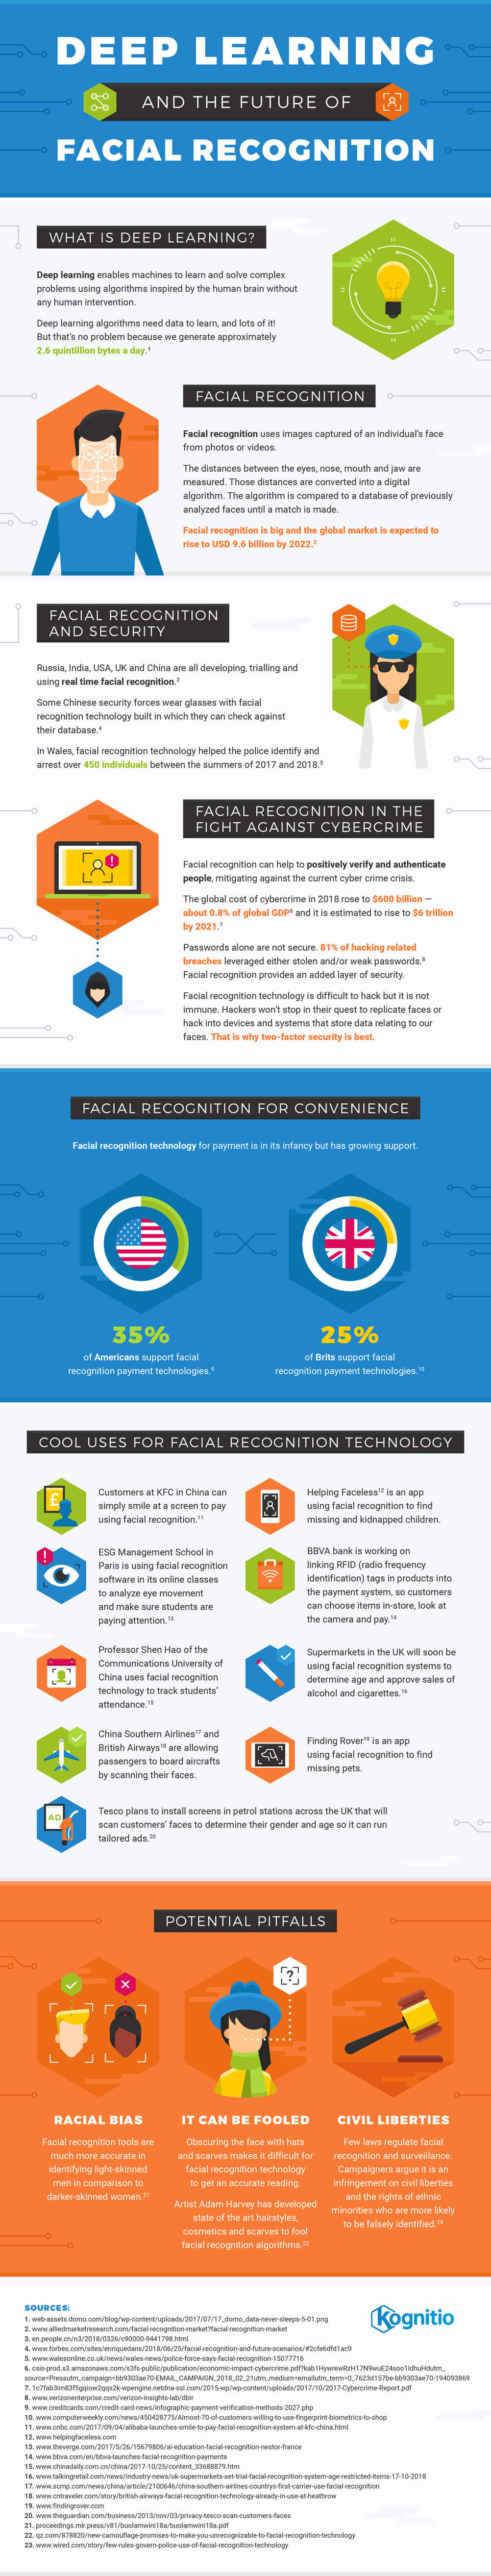 deep-learning-facial-recognition-infographic-plaza